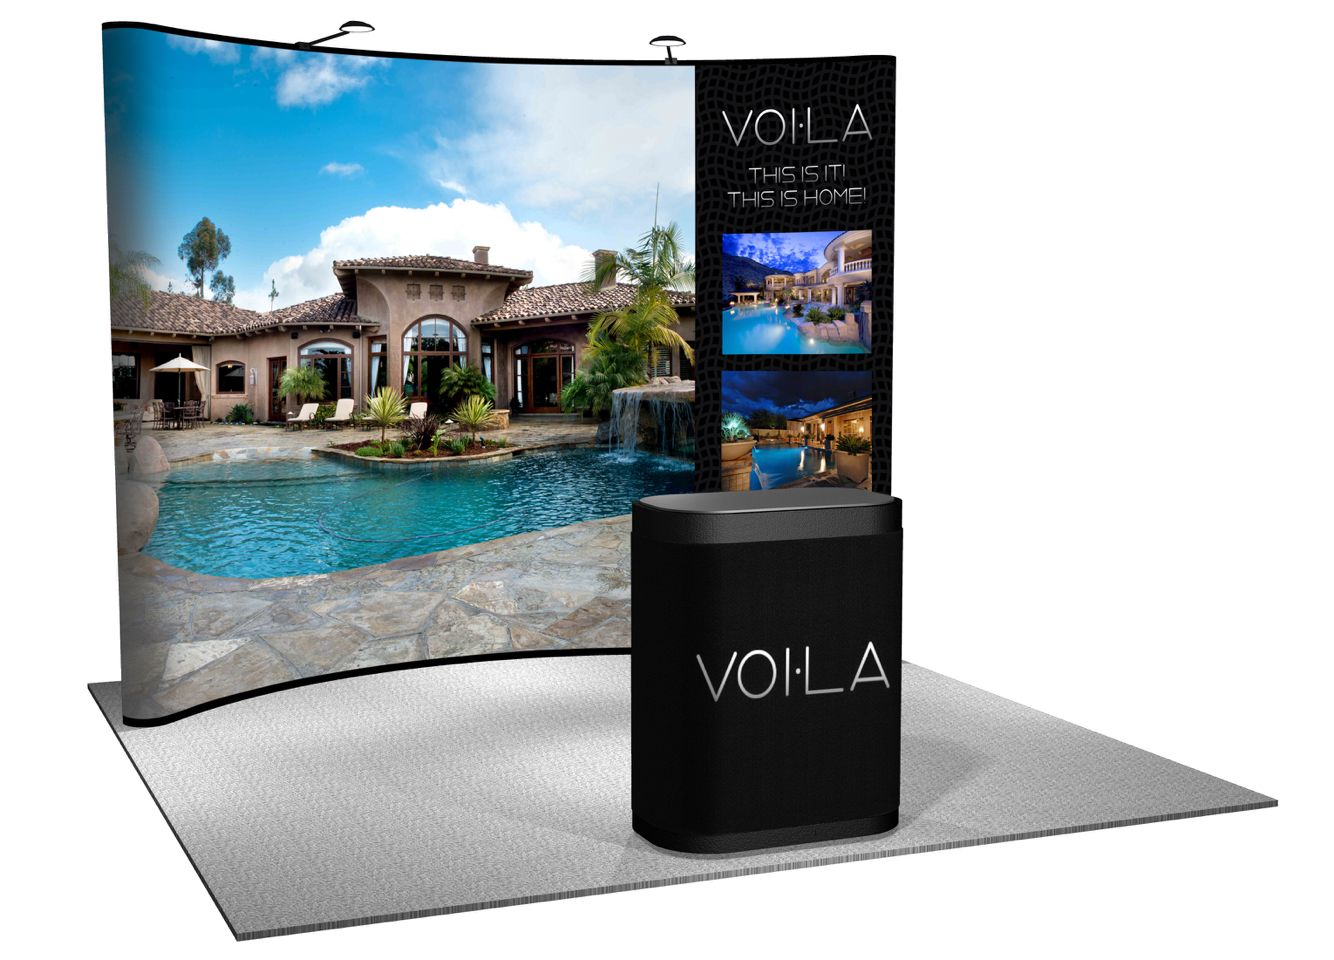 Getting VOI•LA booths ready for expo's around the country is exhilarating www.TheVoila.com